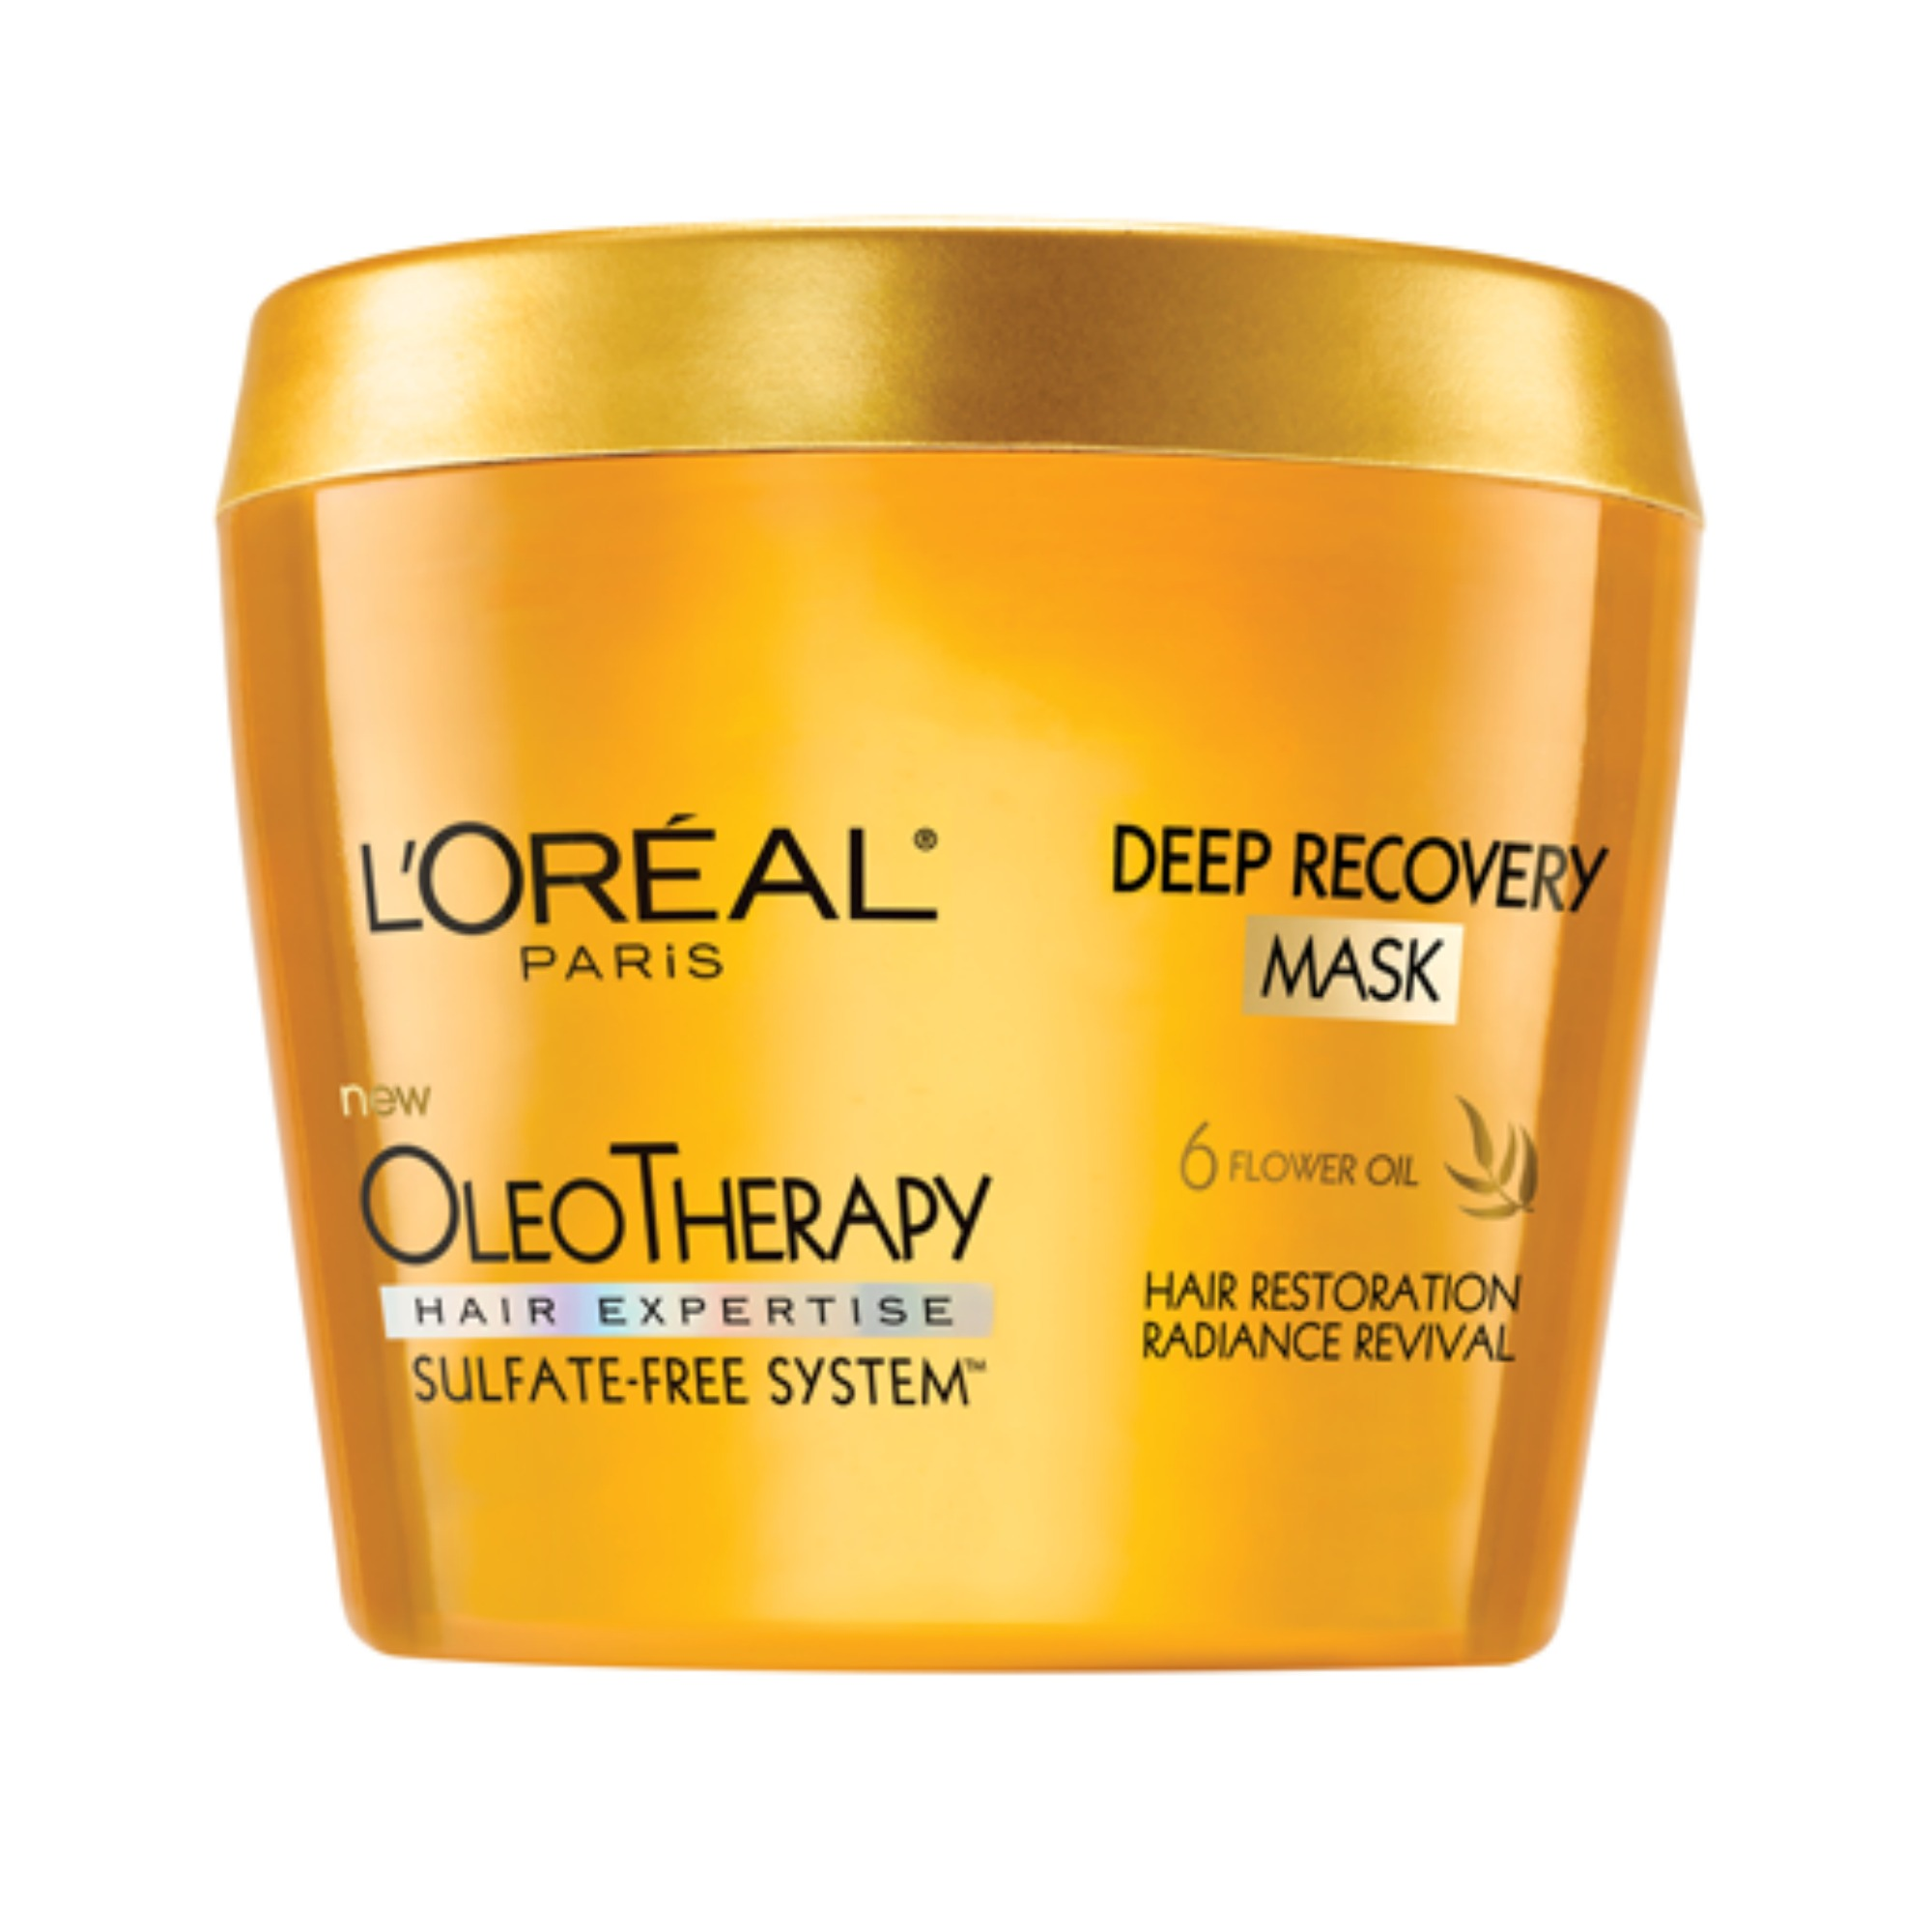 ·L'Oreal Oleo Therapy Deep Recovery Mask, $8.99